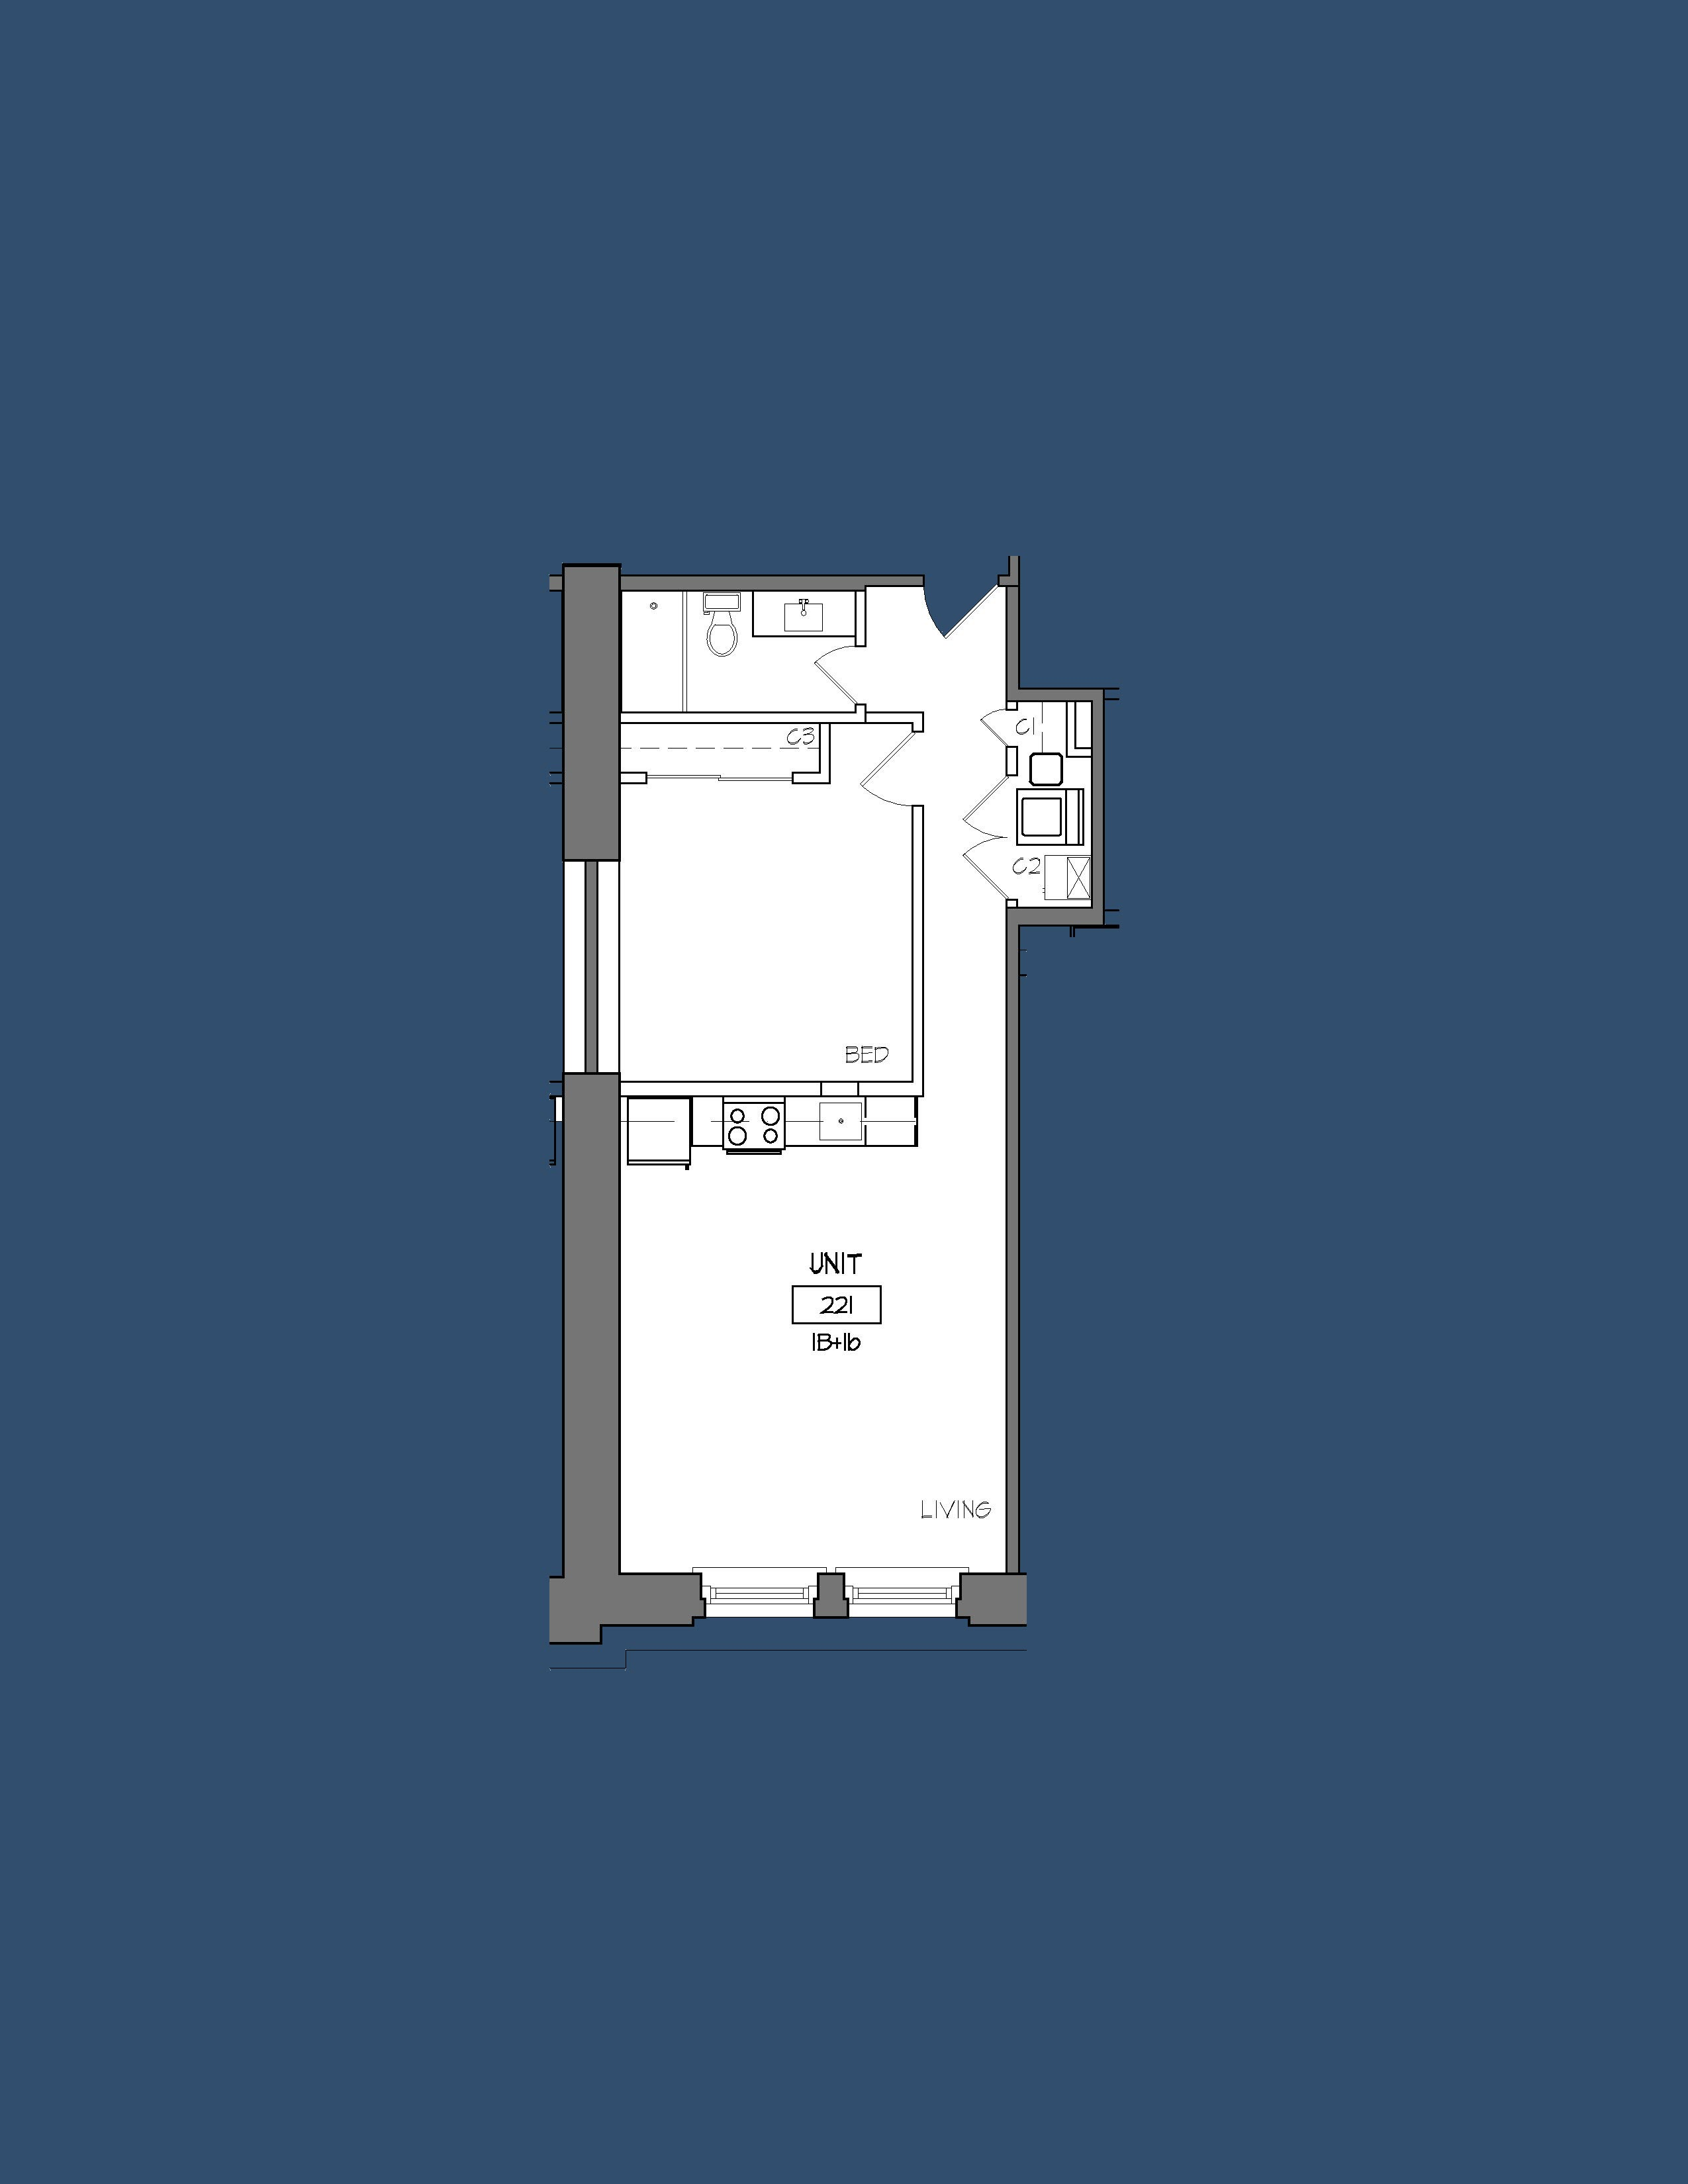 Unit 221 Floor Plan